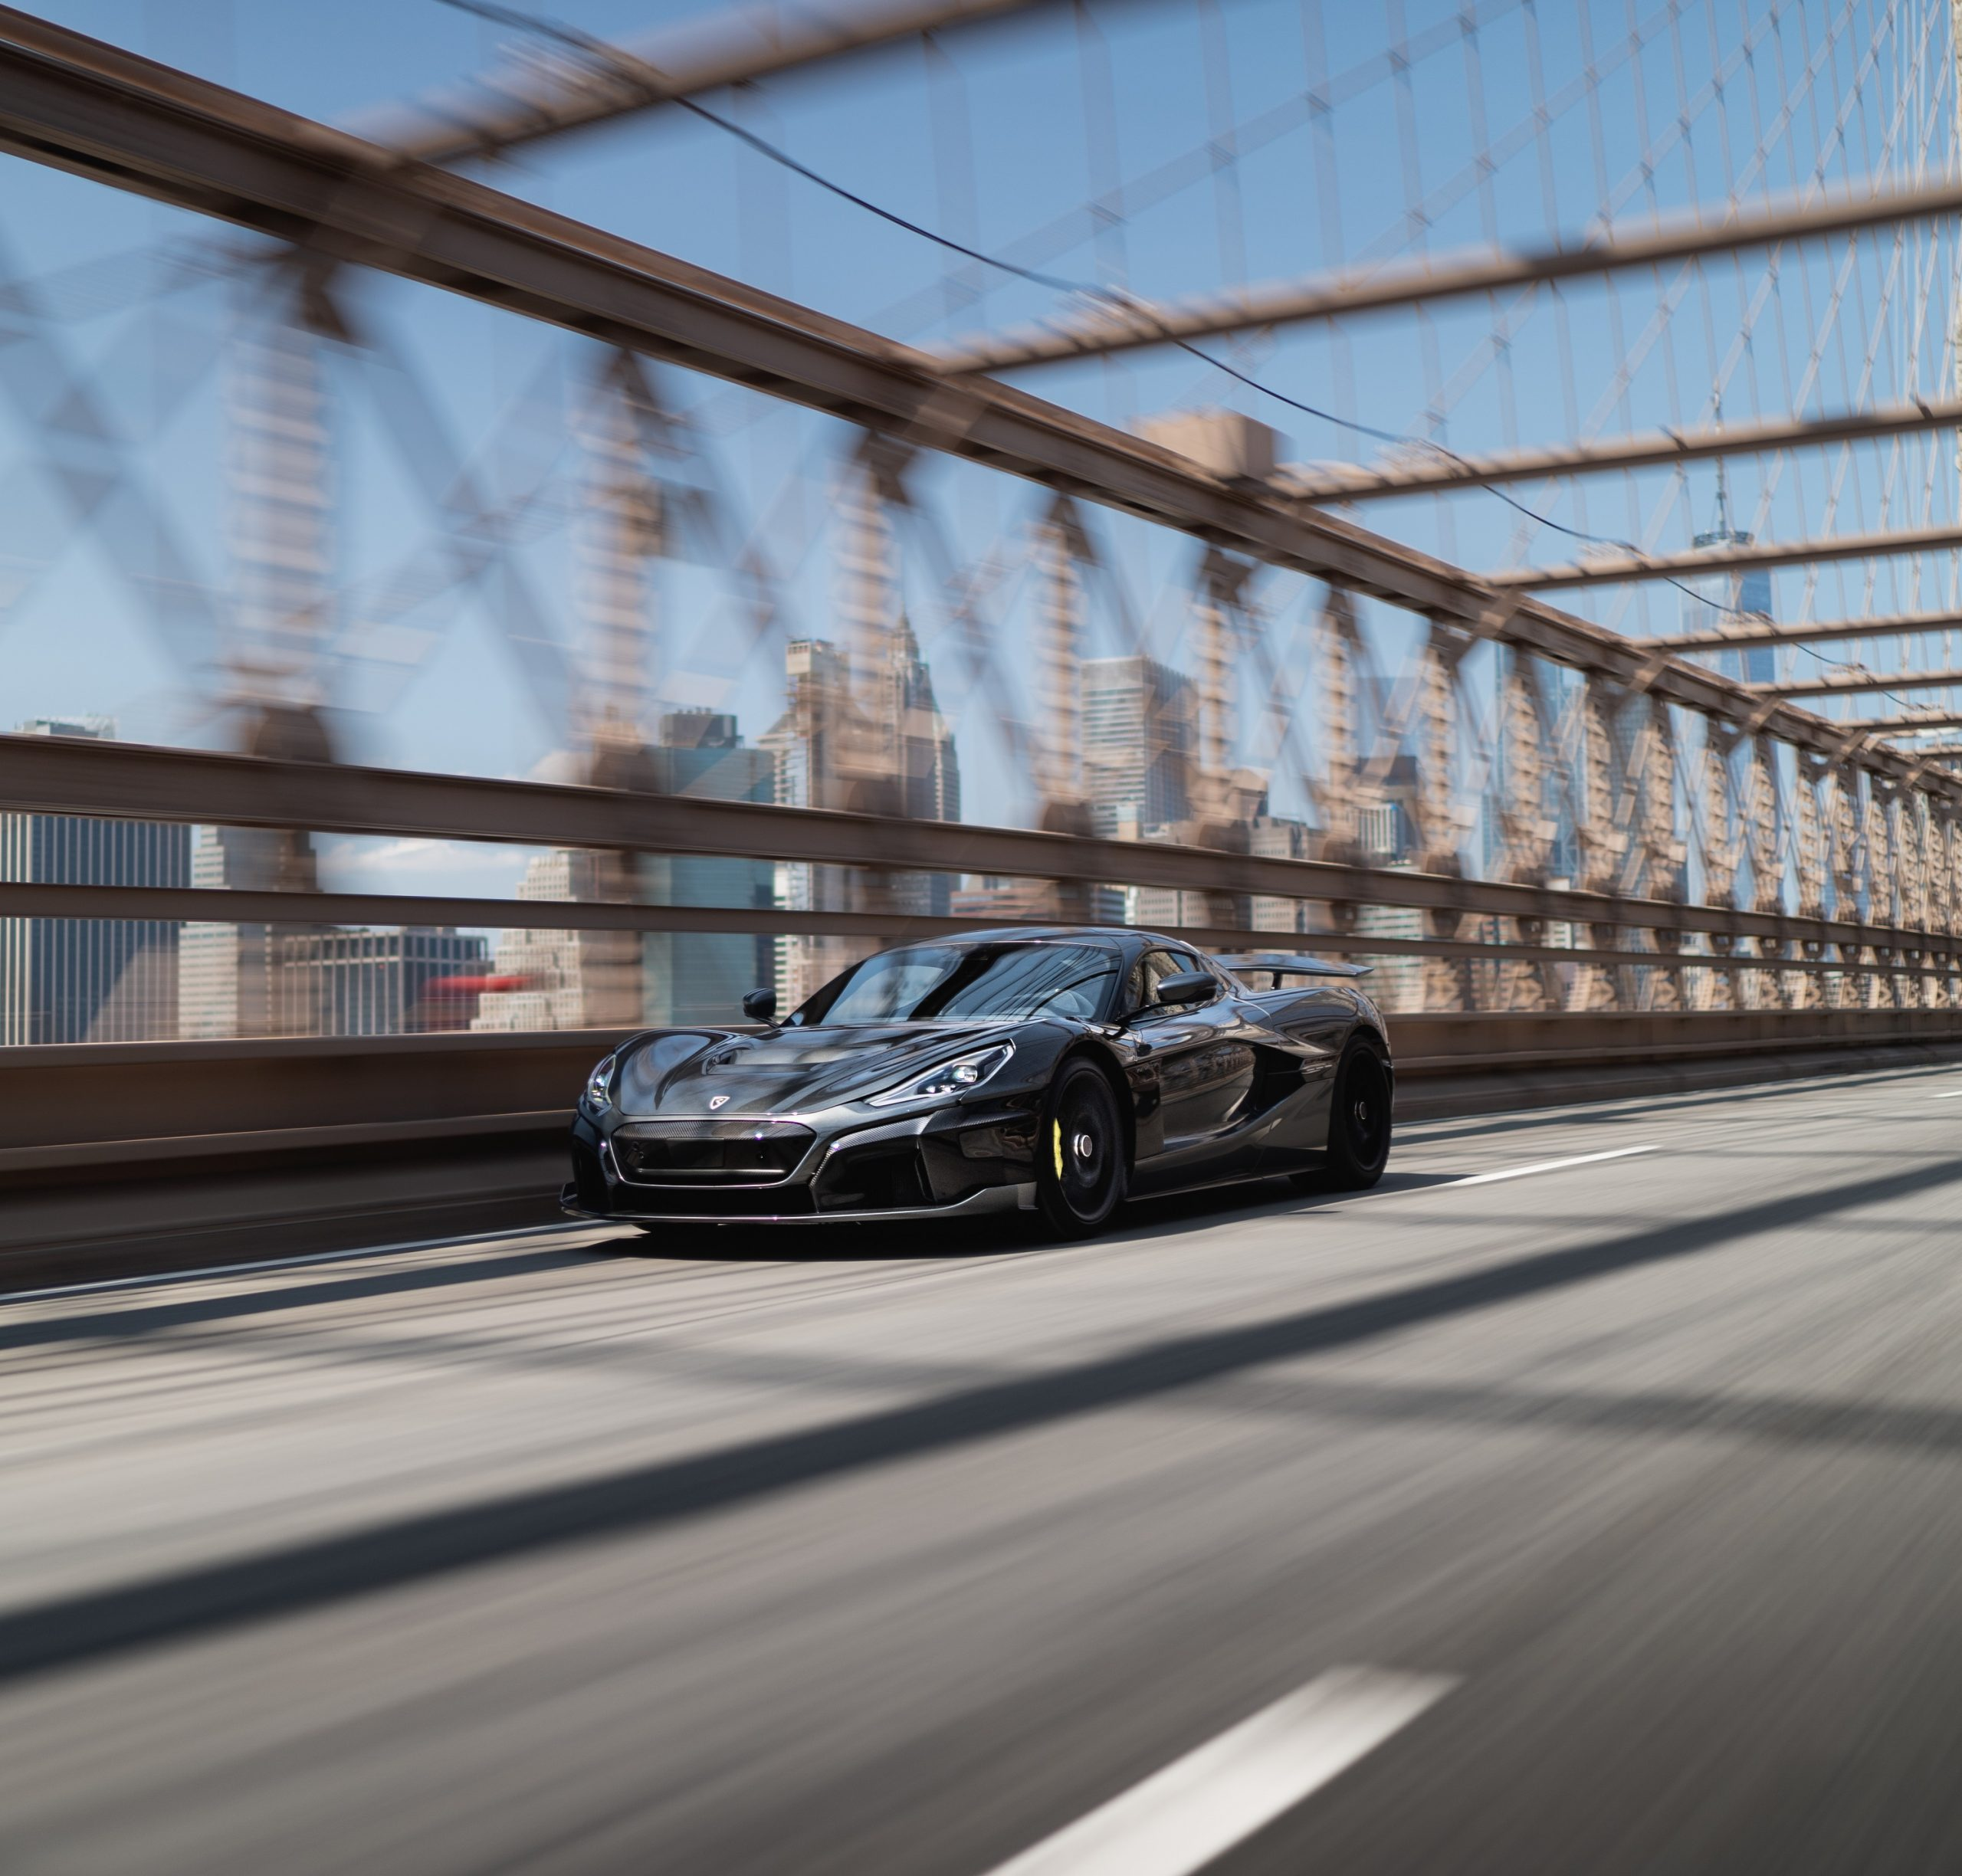 A grey Rimac Nevera, arguably the king of the electric supercars, drives down a bridge shot from the front 3/4.